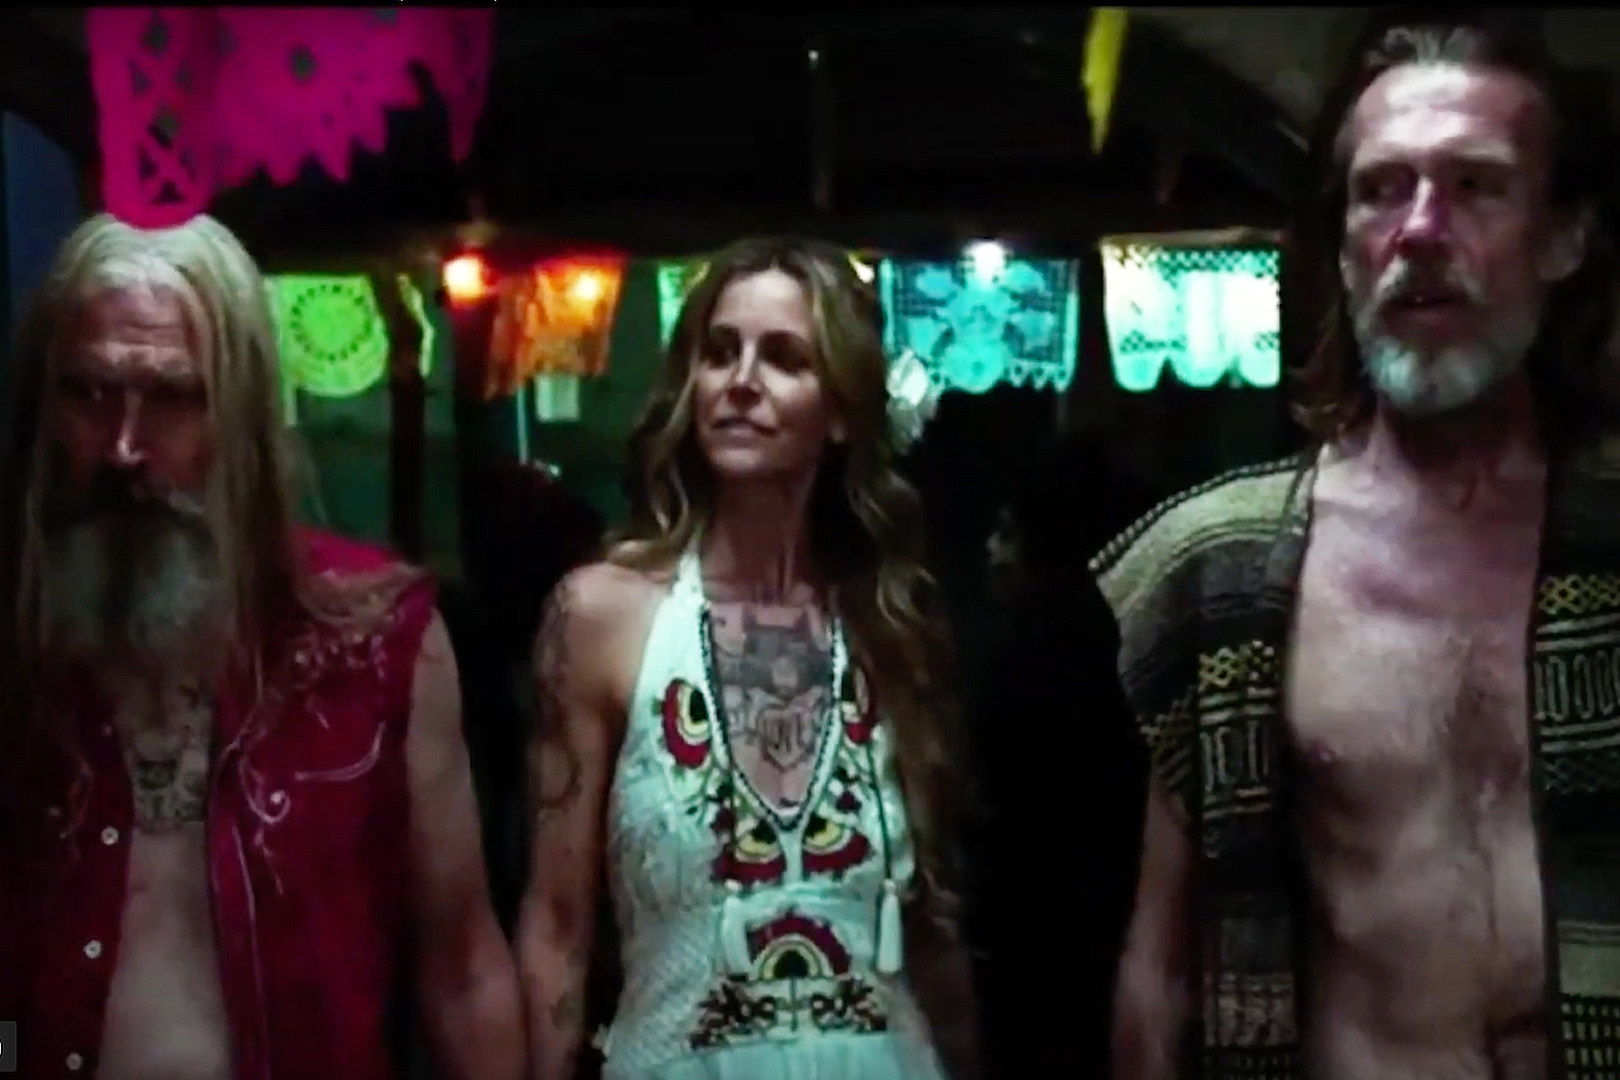 Watch the Horrific New Trailer for Rob Zombie's '3 From Hell'